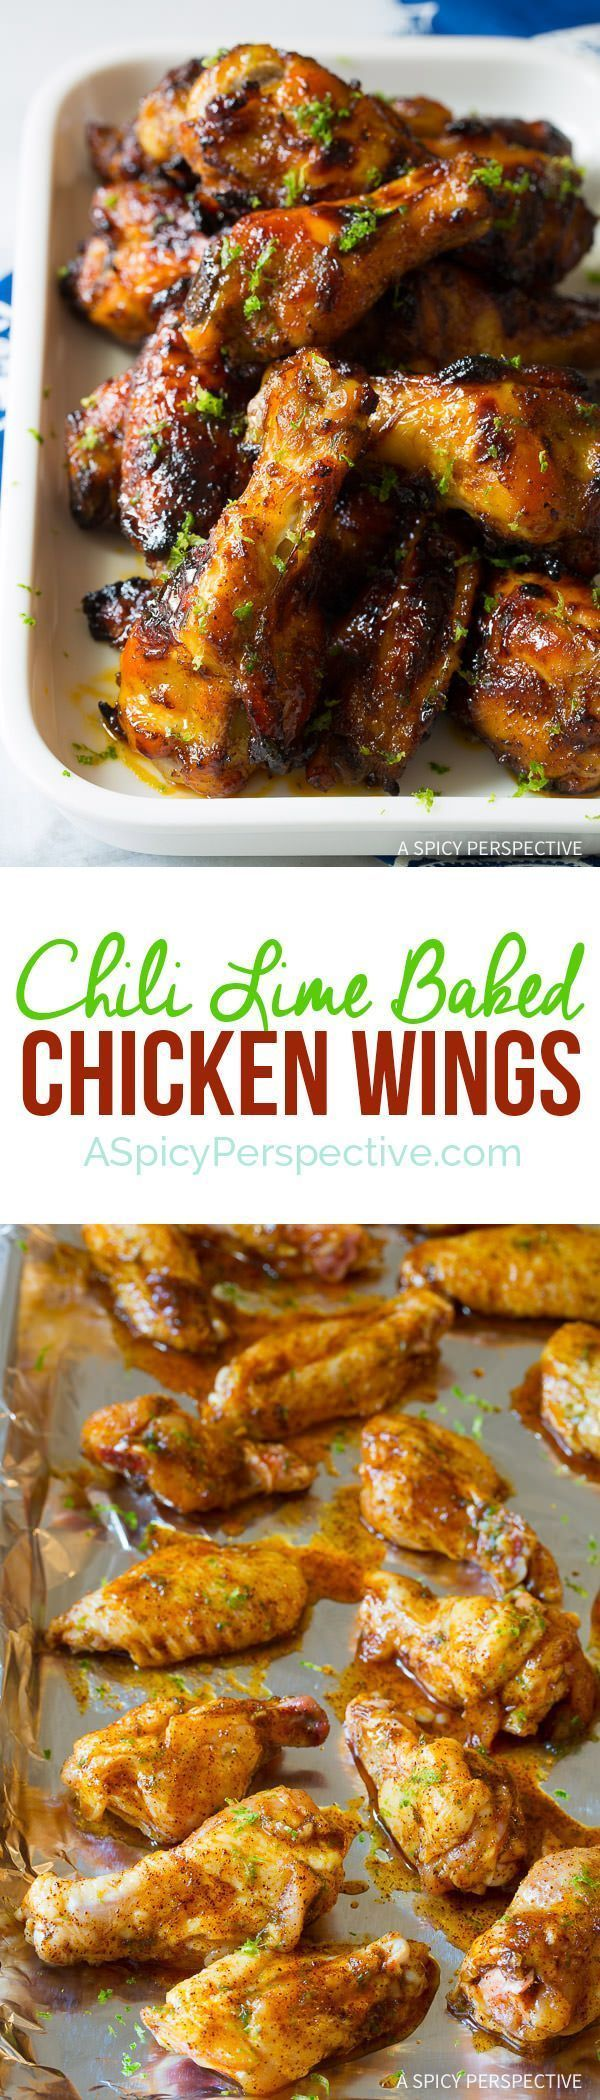 Chili Lime Baked Chicken Wings